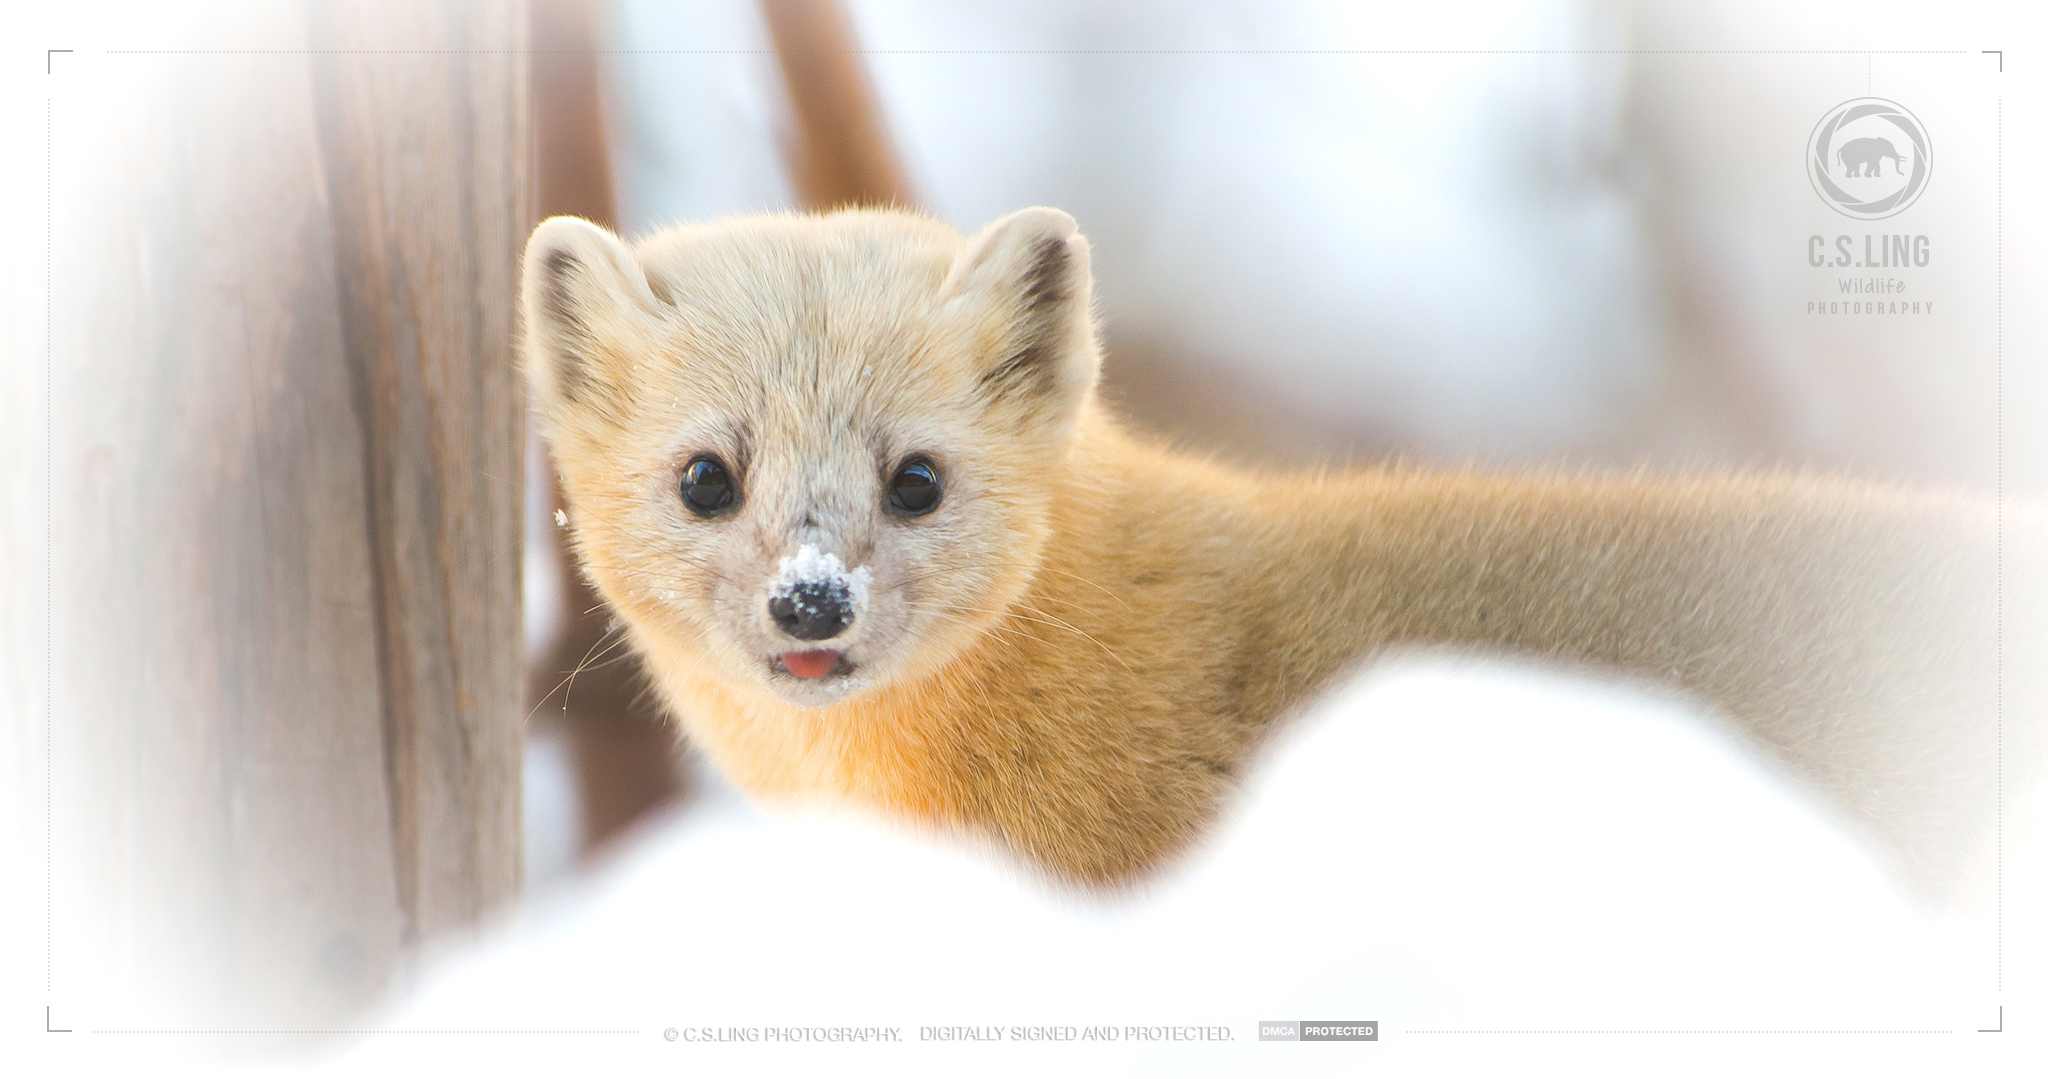 Japanese Marten Snow on nose   Wildlife Photographer in Asia - C.S.Ling